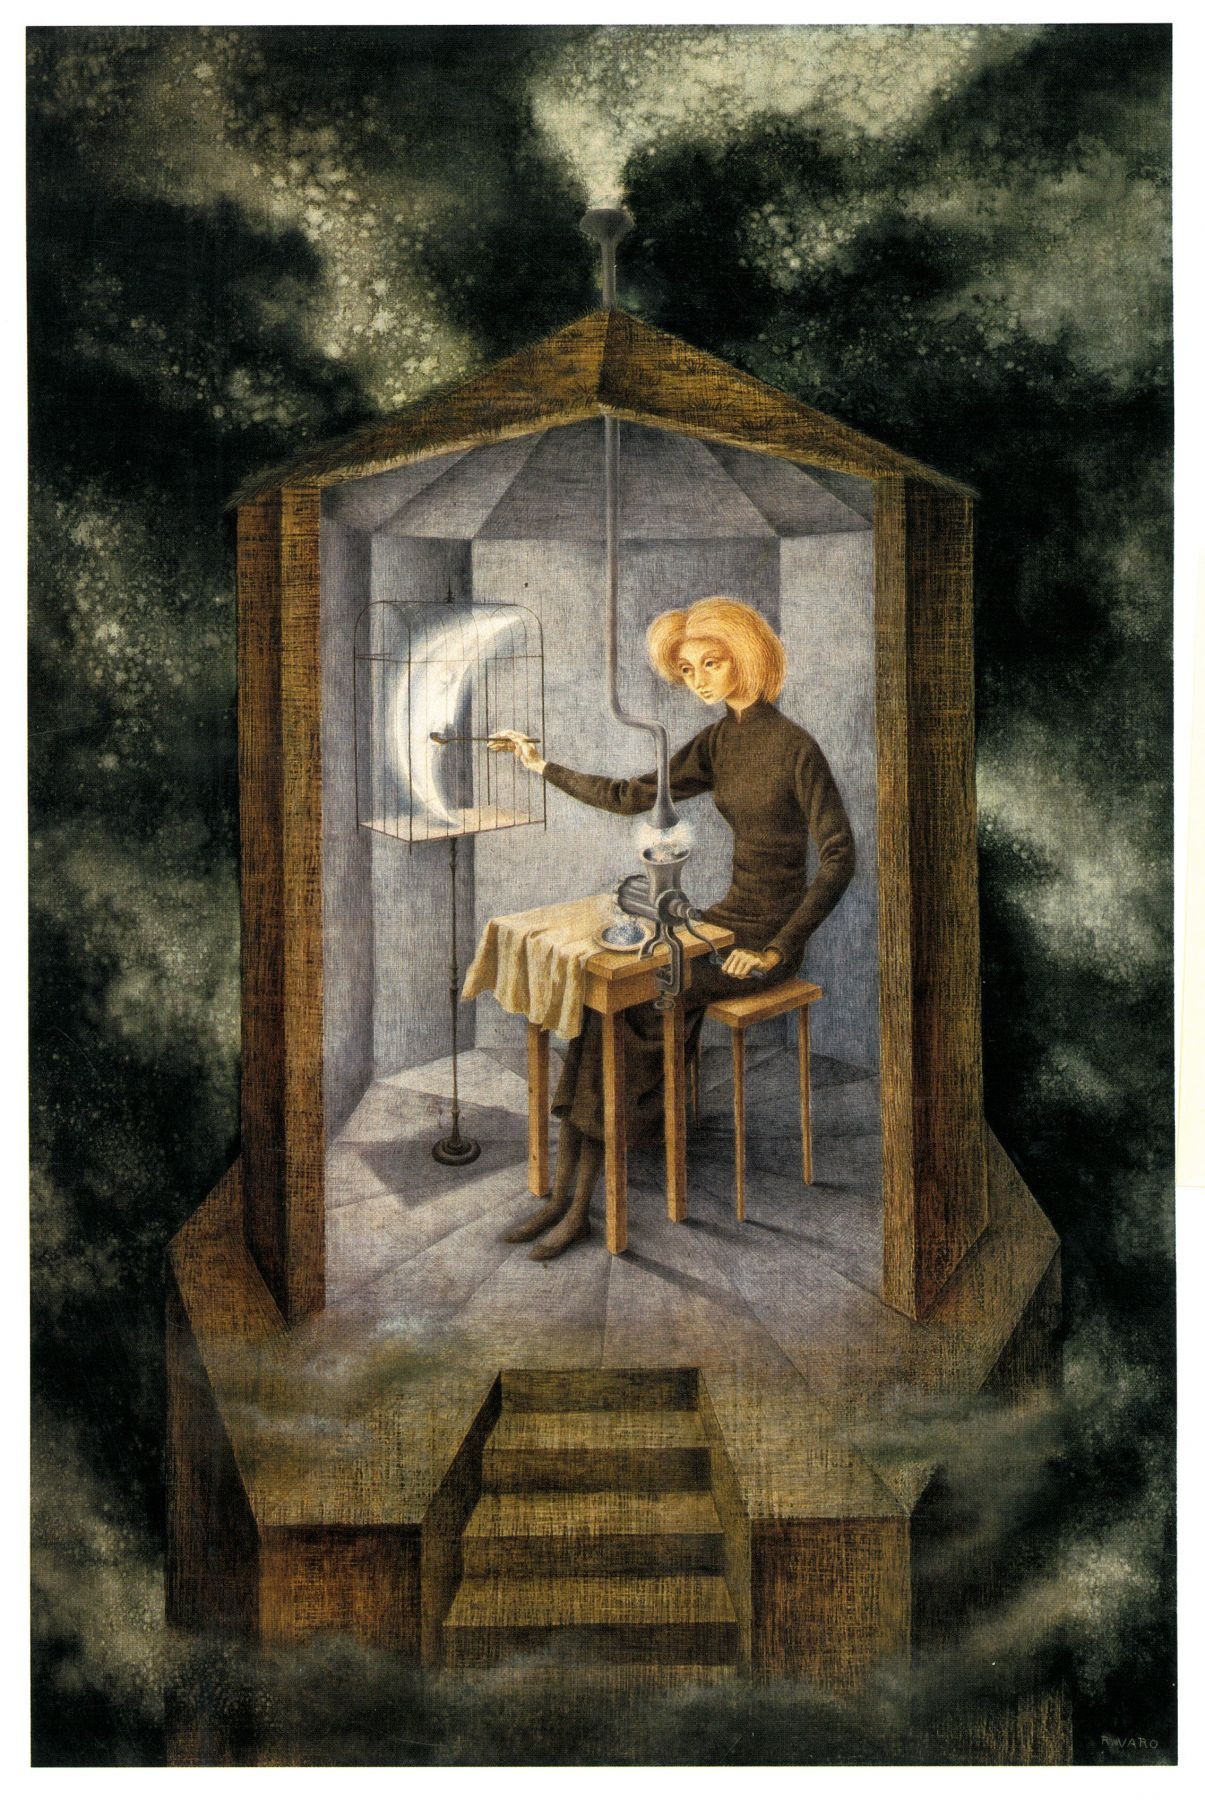 Remedios Varo. Papilla estelar (Celestial Pablum). 1958. Oil on Masonite, 91.5 by 60.7 cm (36⅛ by 23⅞ in.). Colección FEMSA. © 2019 Artists Rights Society (ARS), New York / VEGAP, Madrid